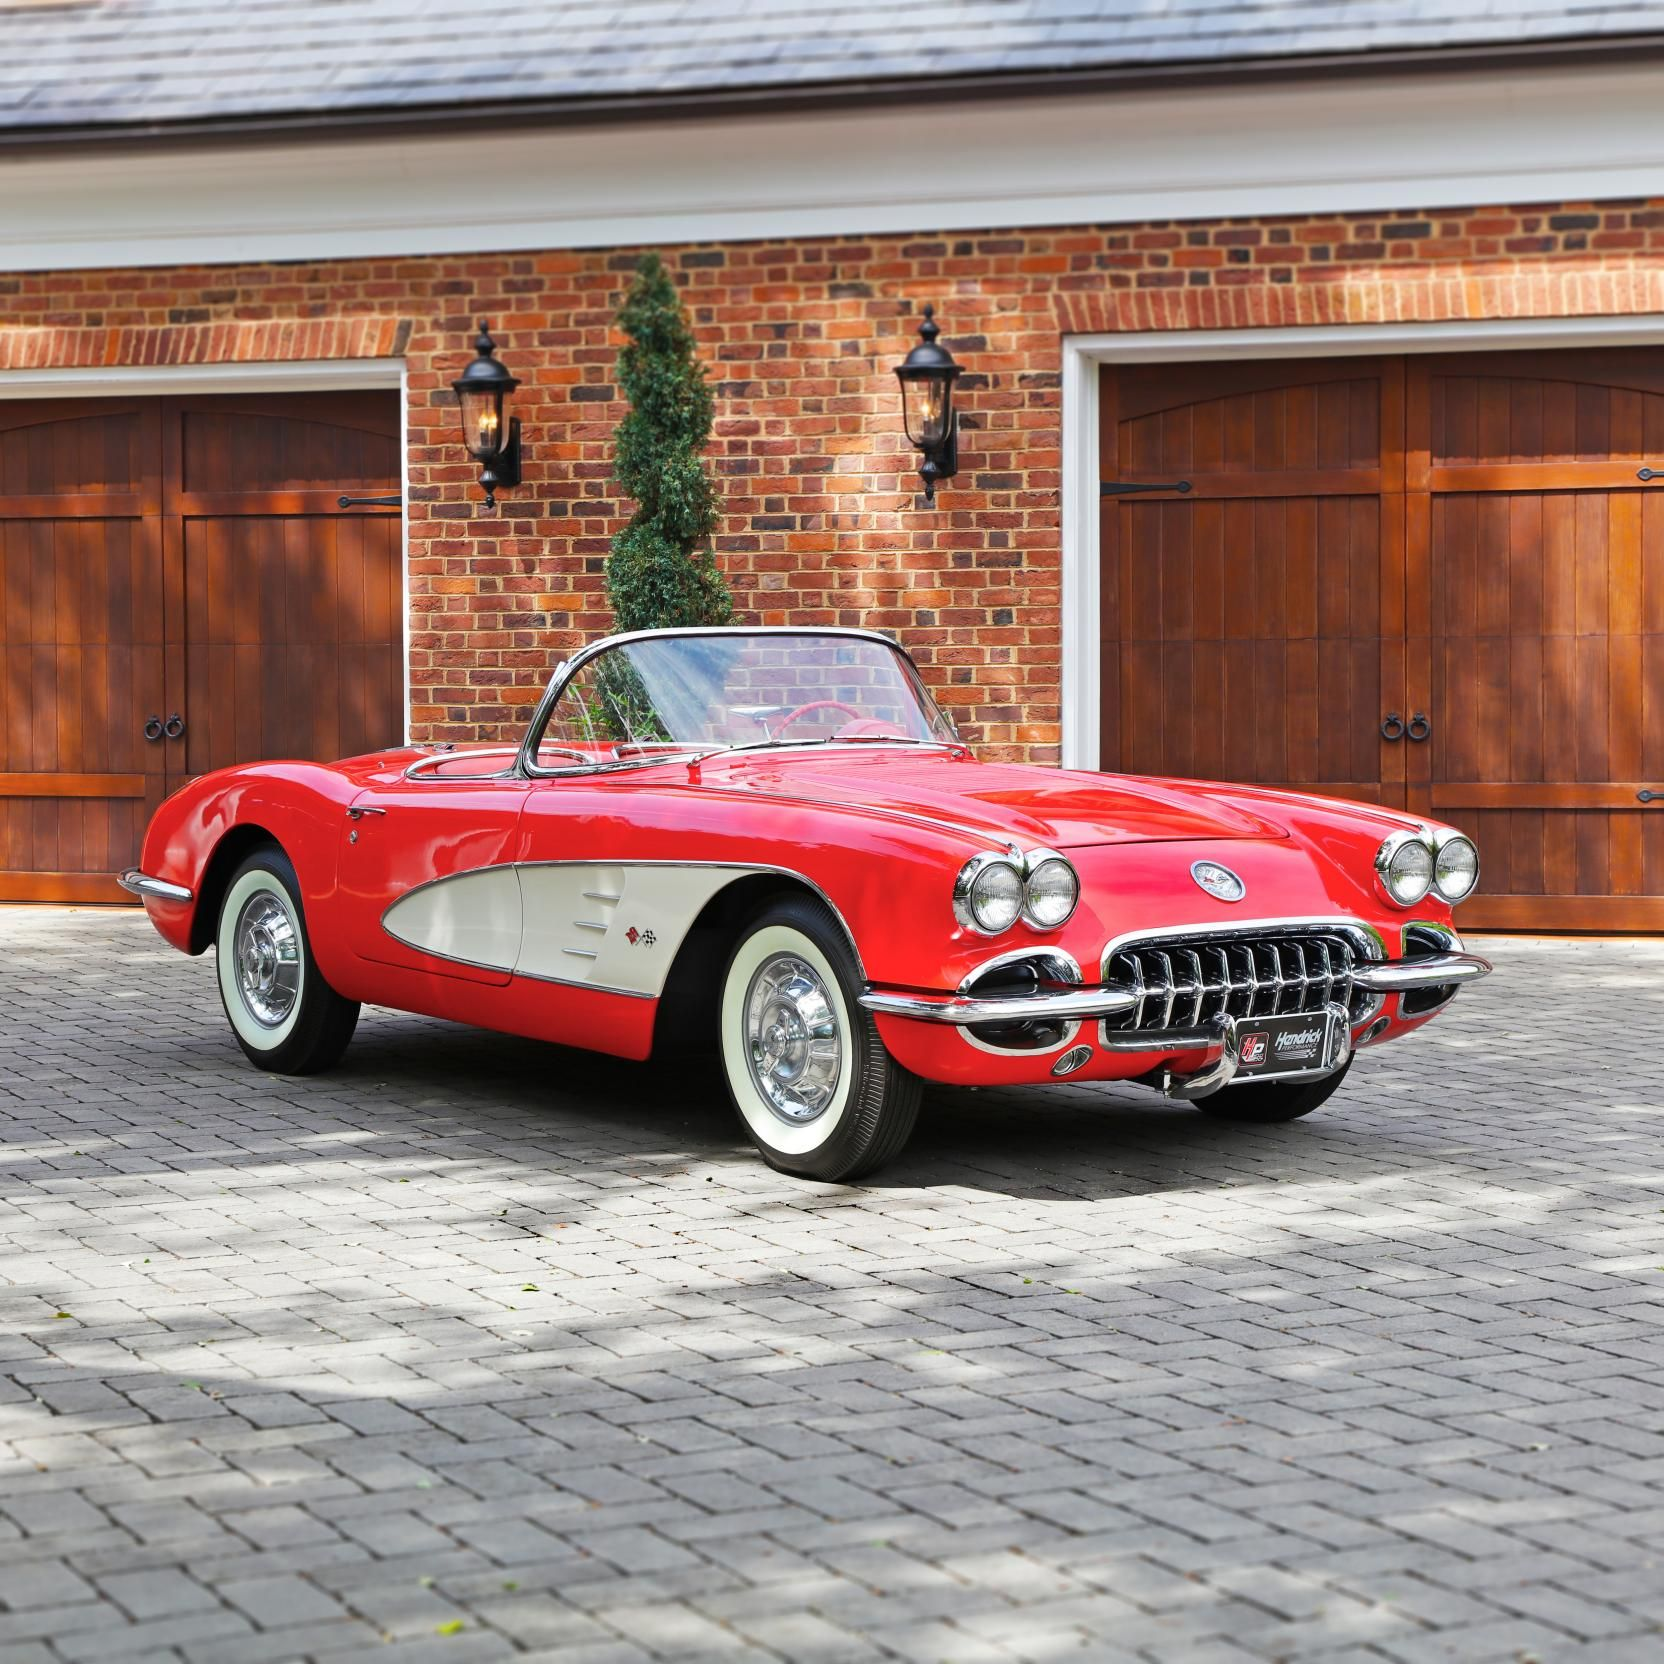 1958 Chevrolet Corvette Convertible Automobiles